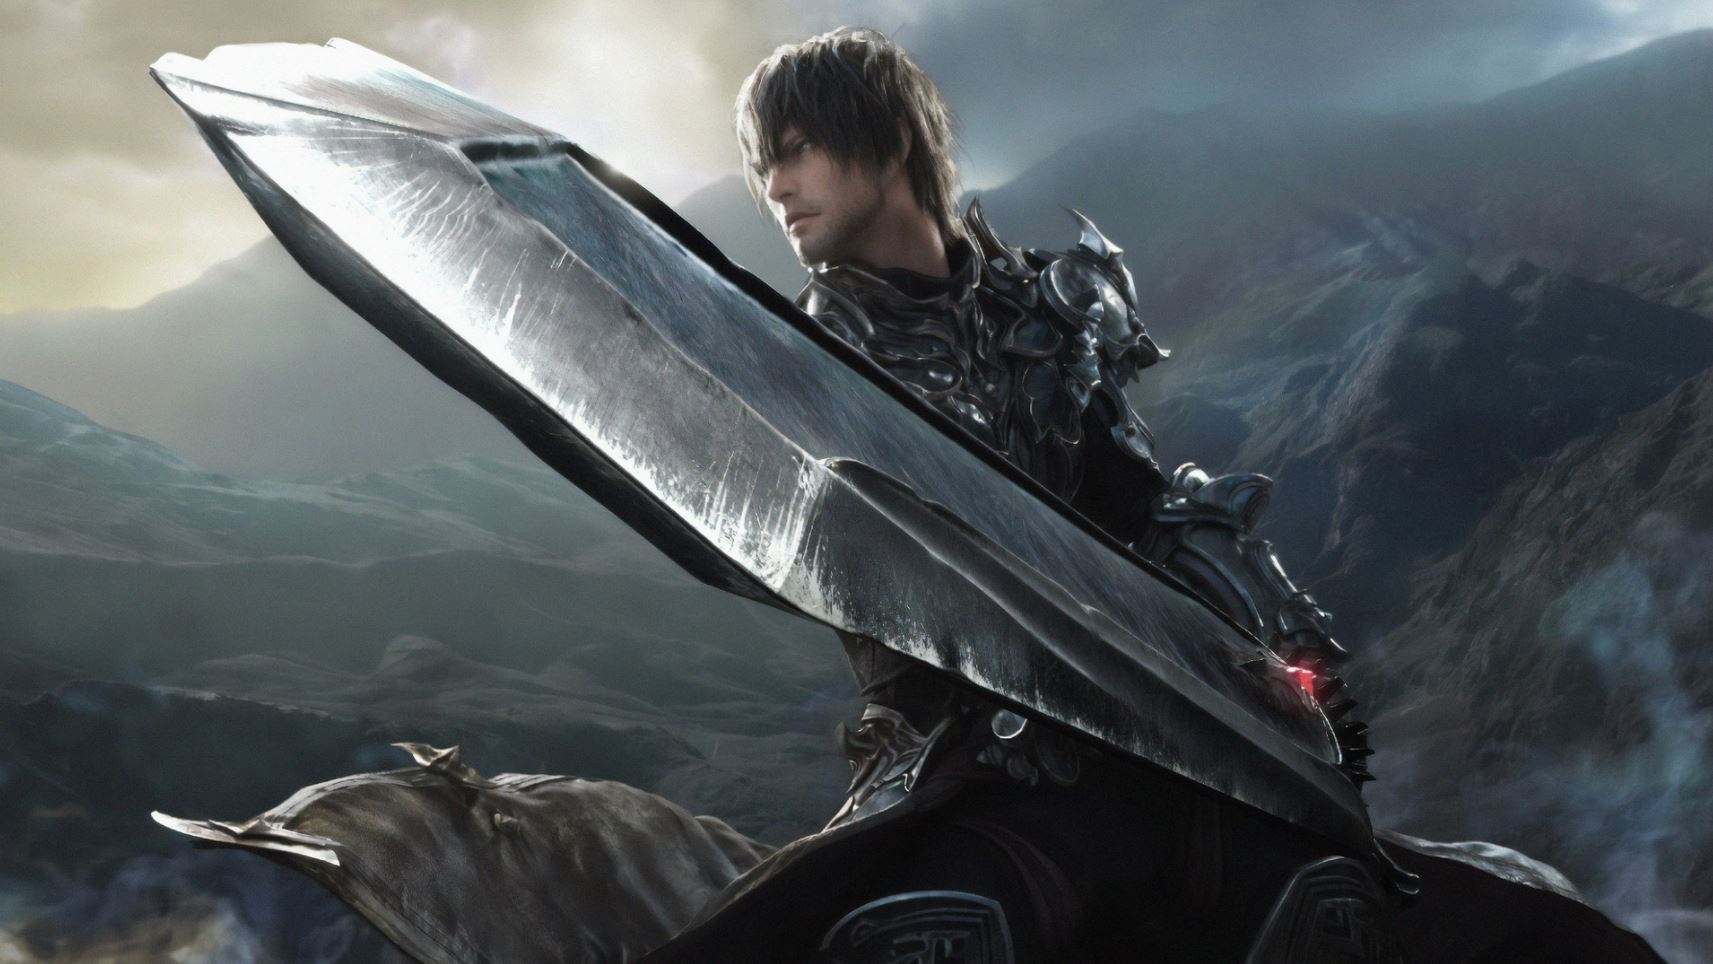 final-fantasy-14-ps5-open-beta-now-live-to-download-on-the-playstation-store